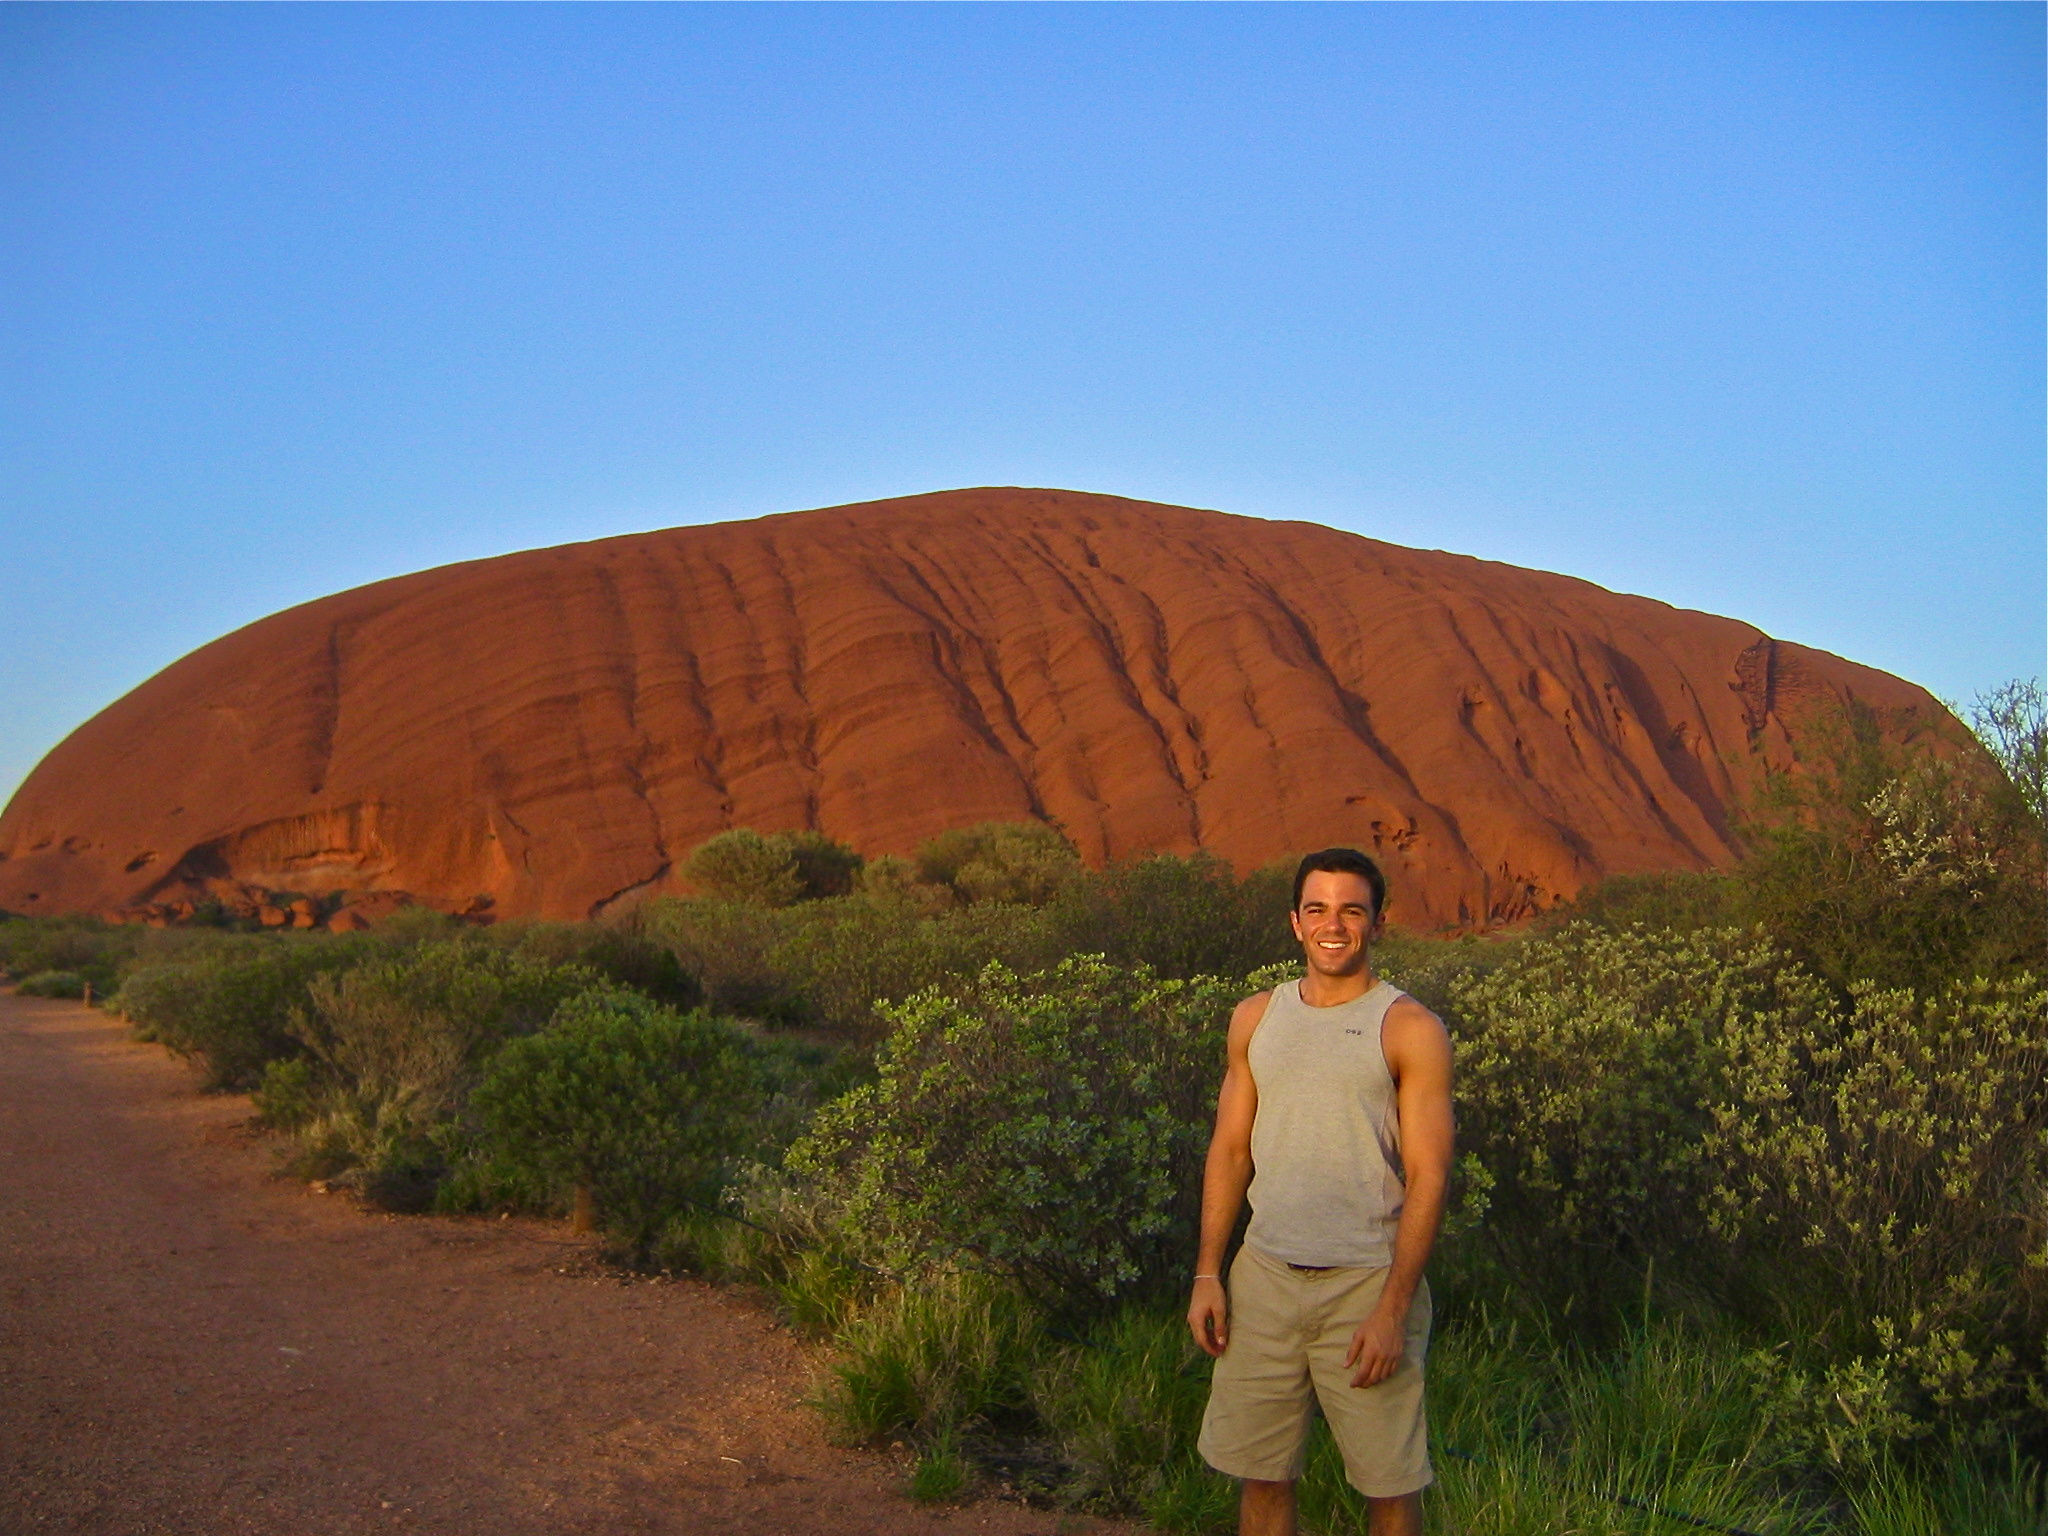 The Australian Outback Australia Ayers Rock Uluru sunrise aroundtheworldwithjustin.com